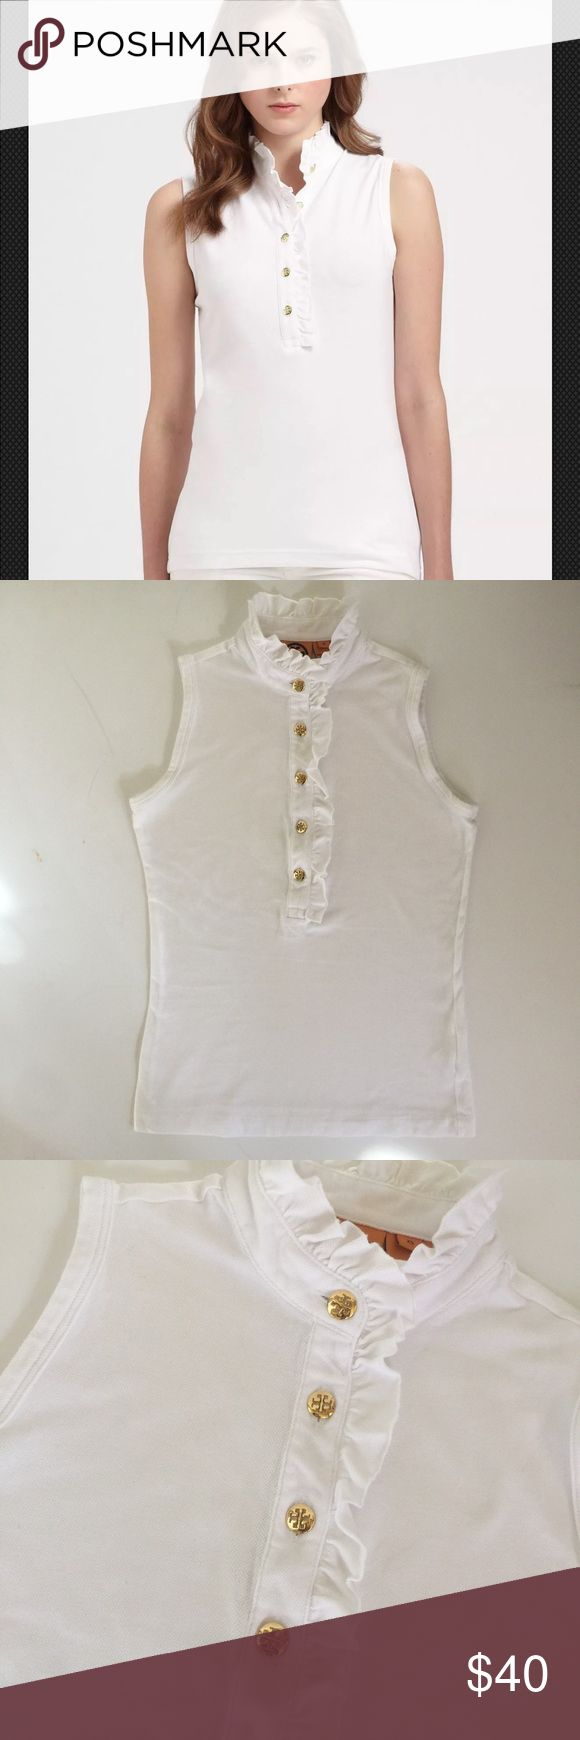 """TORY BURCH White Lidia Sleeveless Polo XS EUC TORY BURCH Women's White Sleeveless Polo Style Number 440620 Size : XS Fabric: 49% Pima Cotton, 49% Modal, 2% Spandex Made in Peru EUC Length 23"""", Width 18"""" (underarm to underarm) A brief stand collar and a logo-button placket traced with pert ruffles grant ladylike updates to a sleeveless, stretchy polo shirt.   This shirt is in excellent used condition with no stains, rips, holes, snags or tears. It will come to you washed and ready for…"""